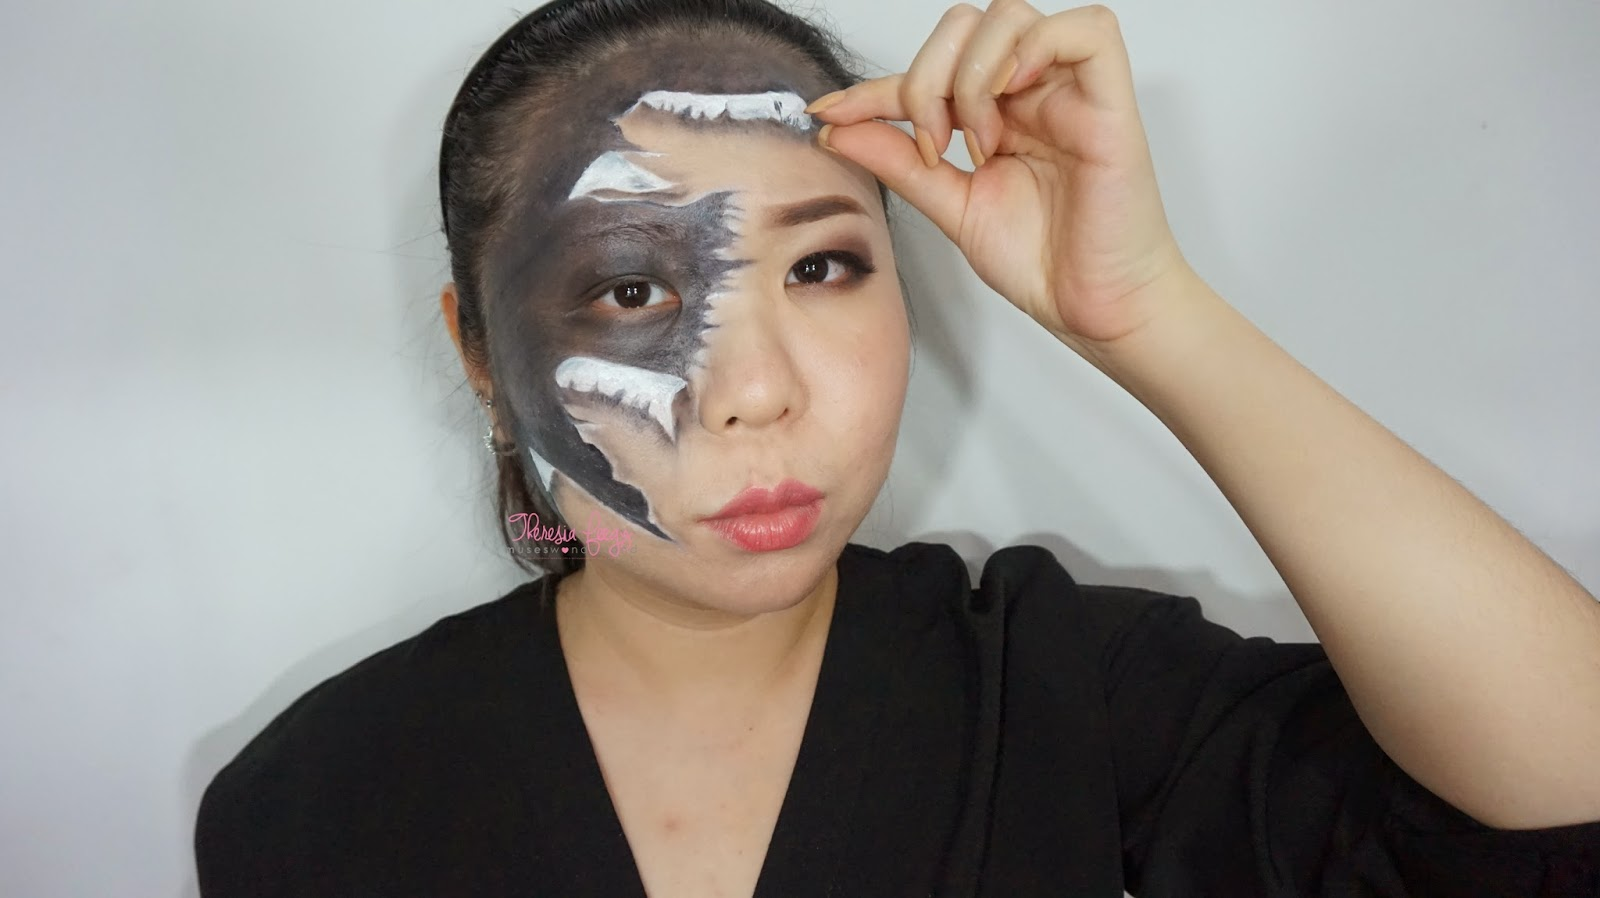 Learn how to get a ripped paper effect on the skin with just face paint and eyeshadow using a 3D illusion technique makeup. Demo by indonesian top blogger in beauty. Product used are pac face paint and sariayu inspirasi borneo eyeshadow.